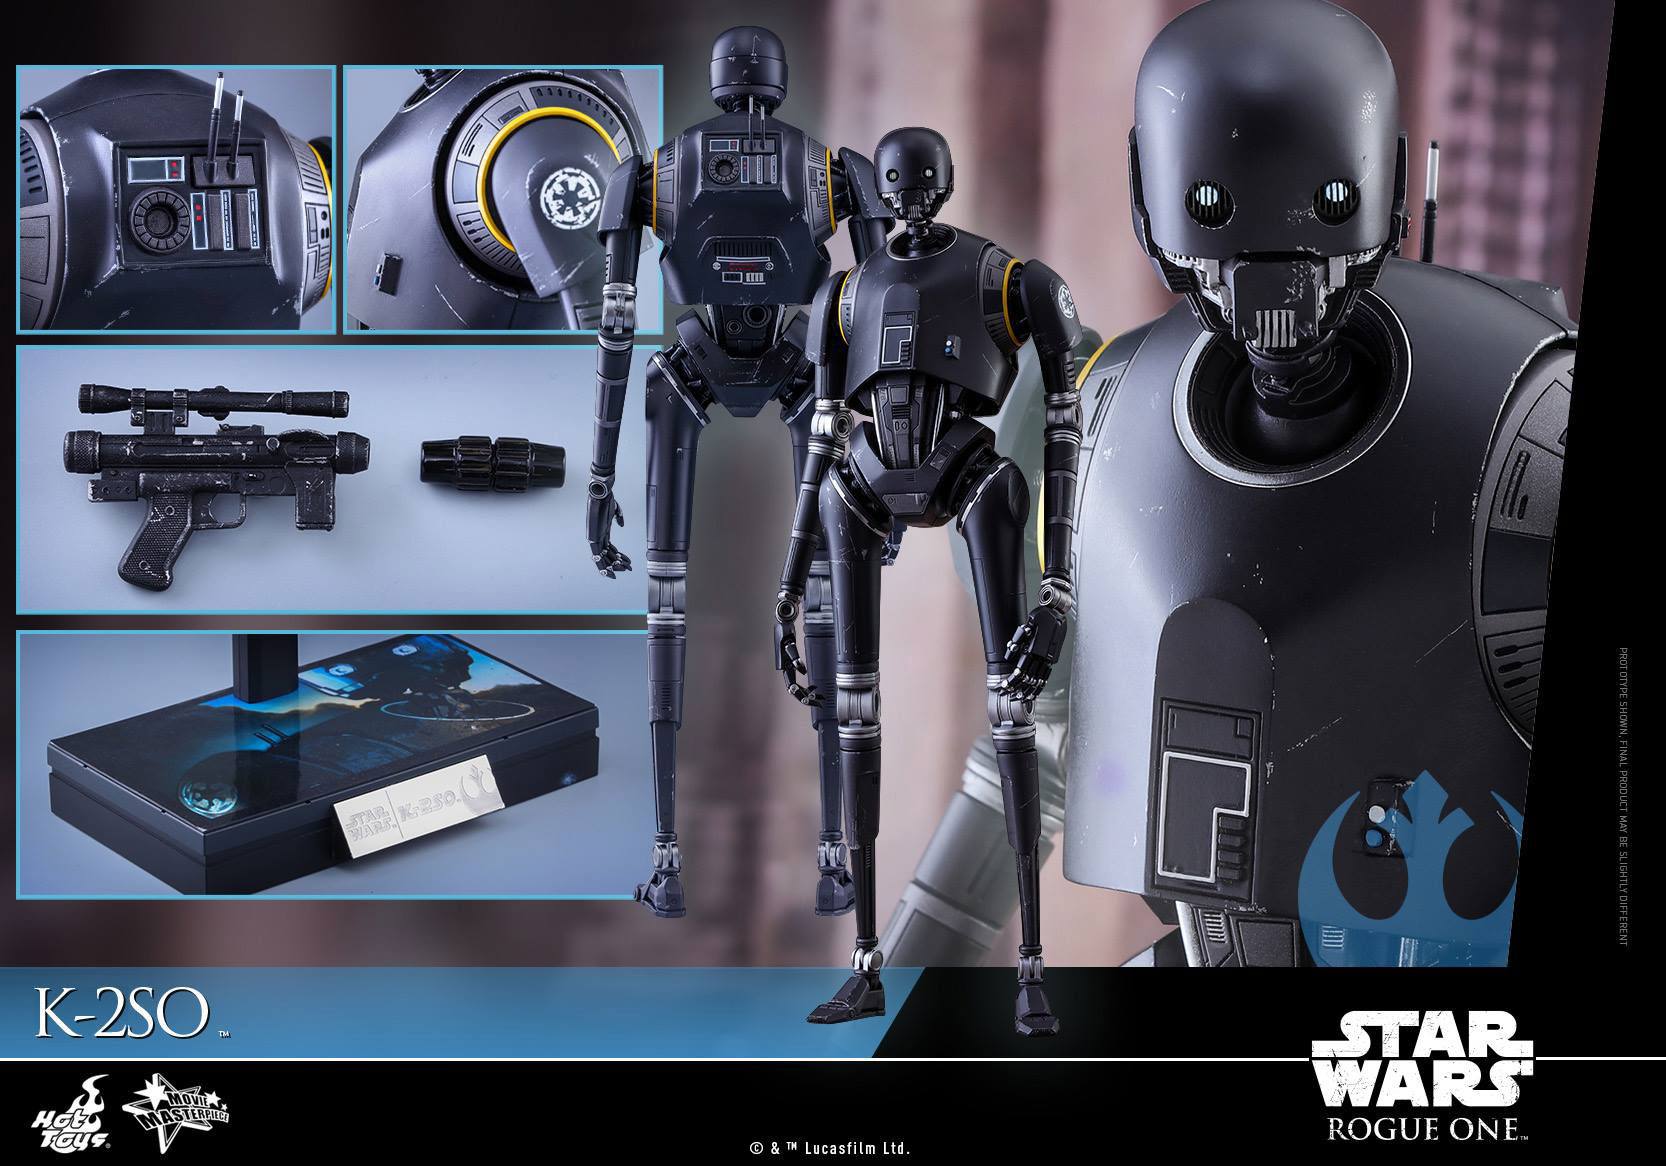 hot-toys-star-wars-rogue-one-K-2SO-figure-10